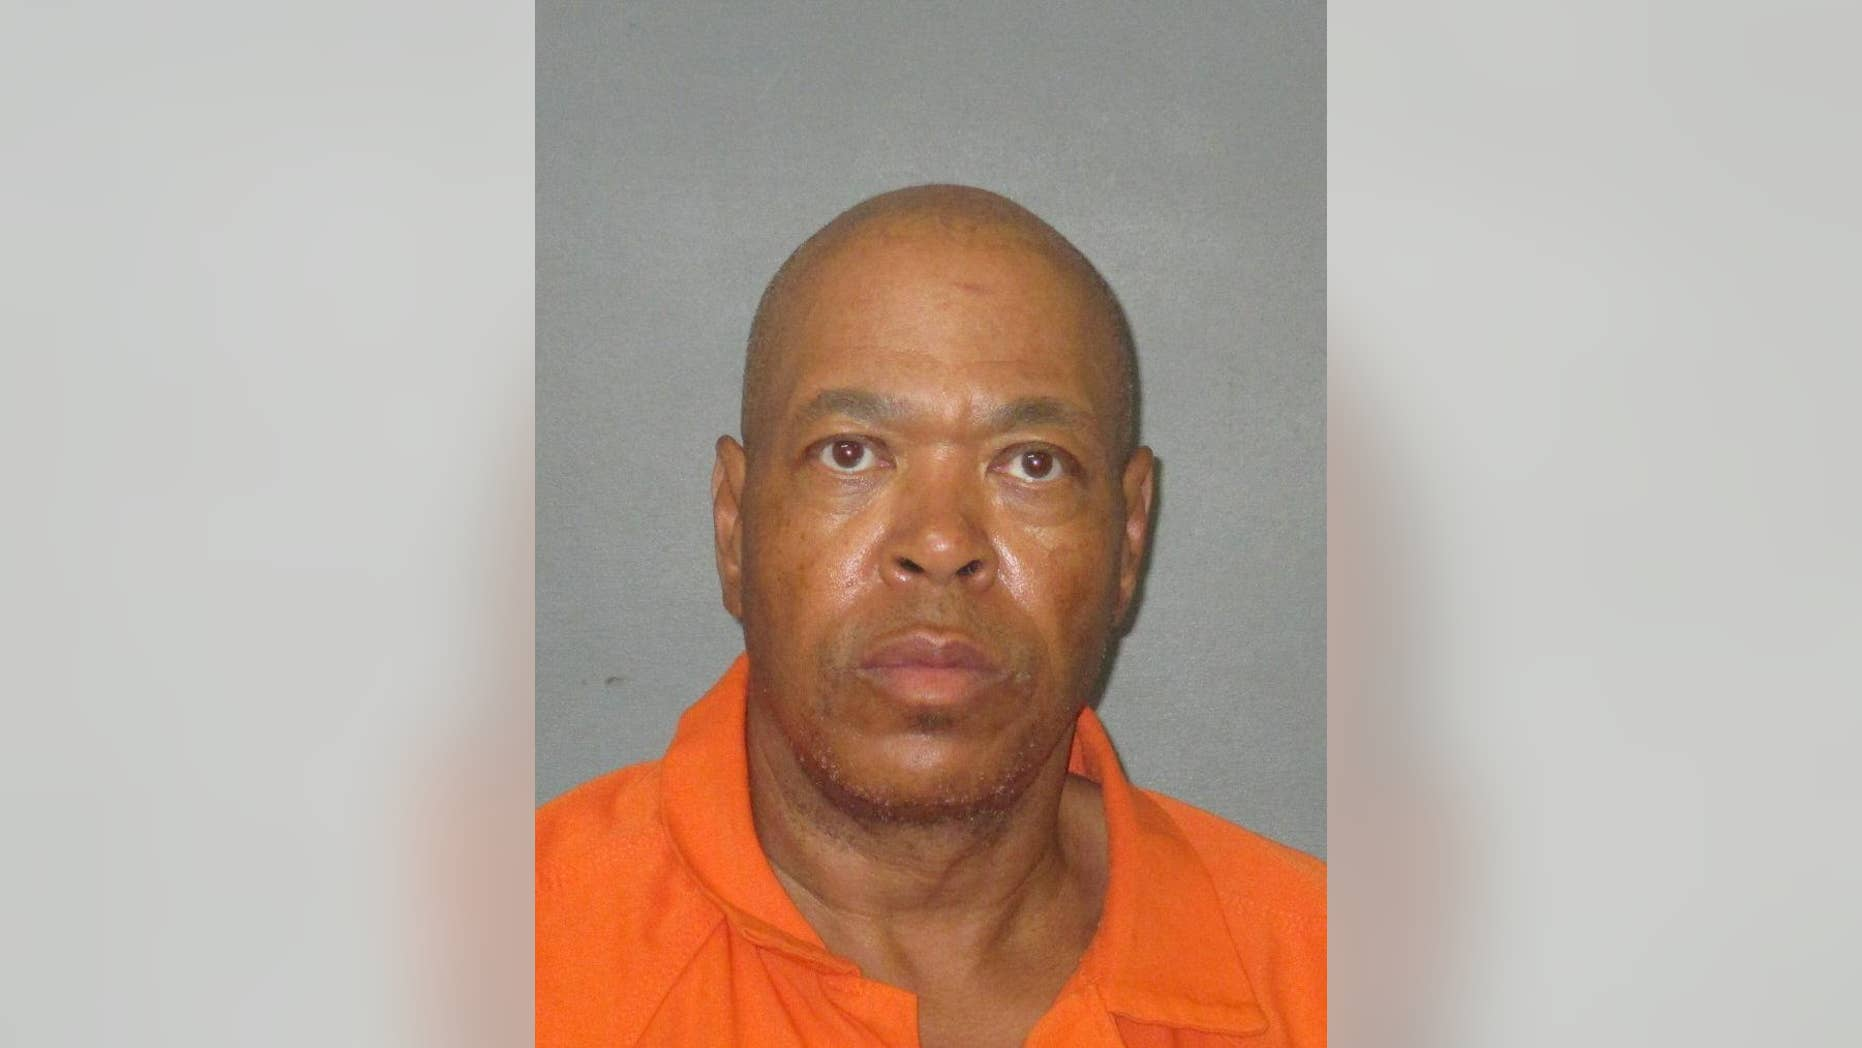 Willie Joseph III, 63, allegedly killed a woman with a hammer after getting into an argument. (EBRSO)